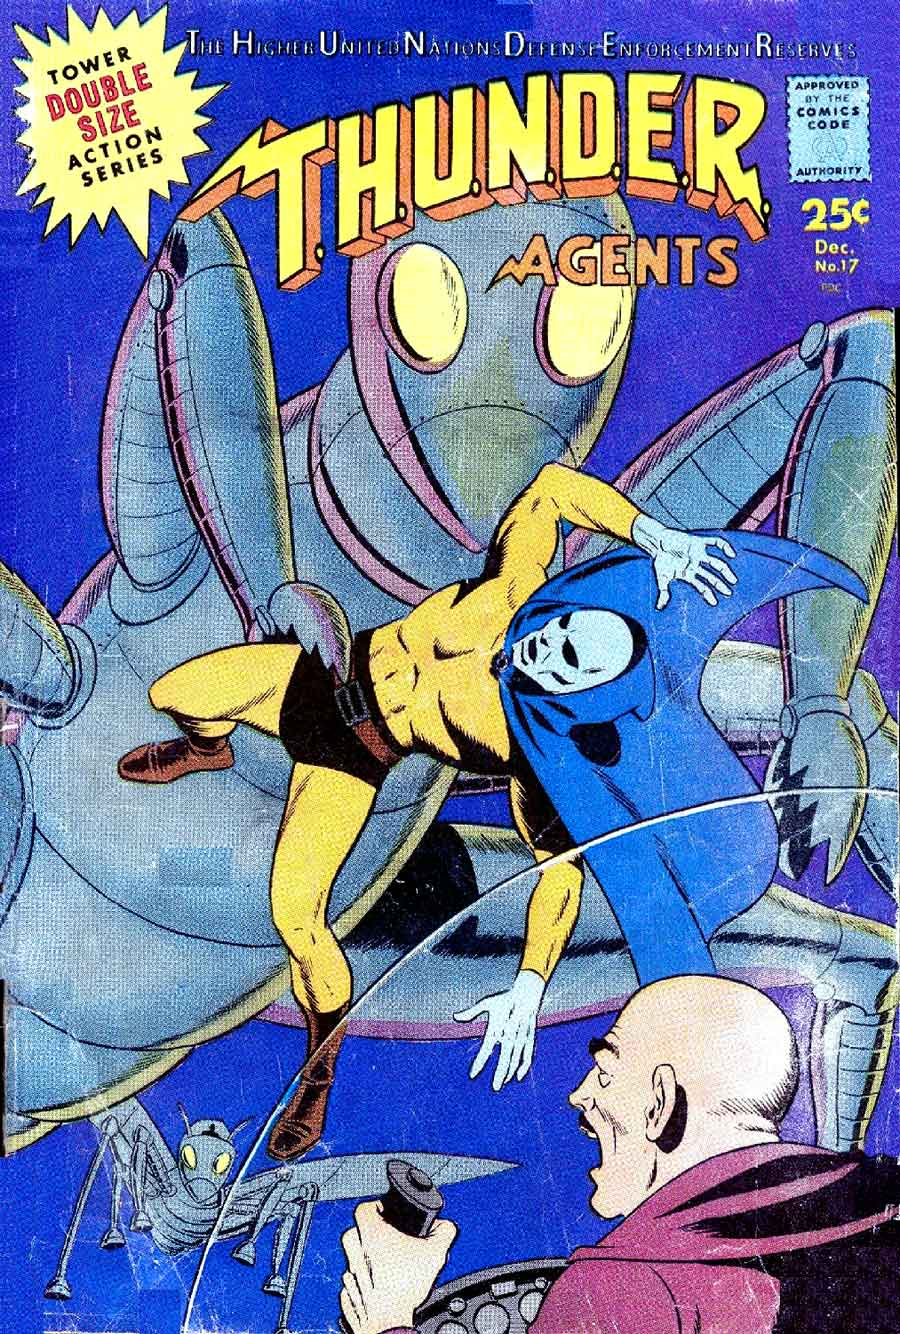 Thunder Agents v1 #17 tower silver age 1960s comic book cover art